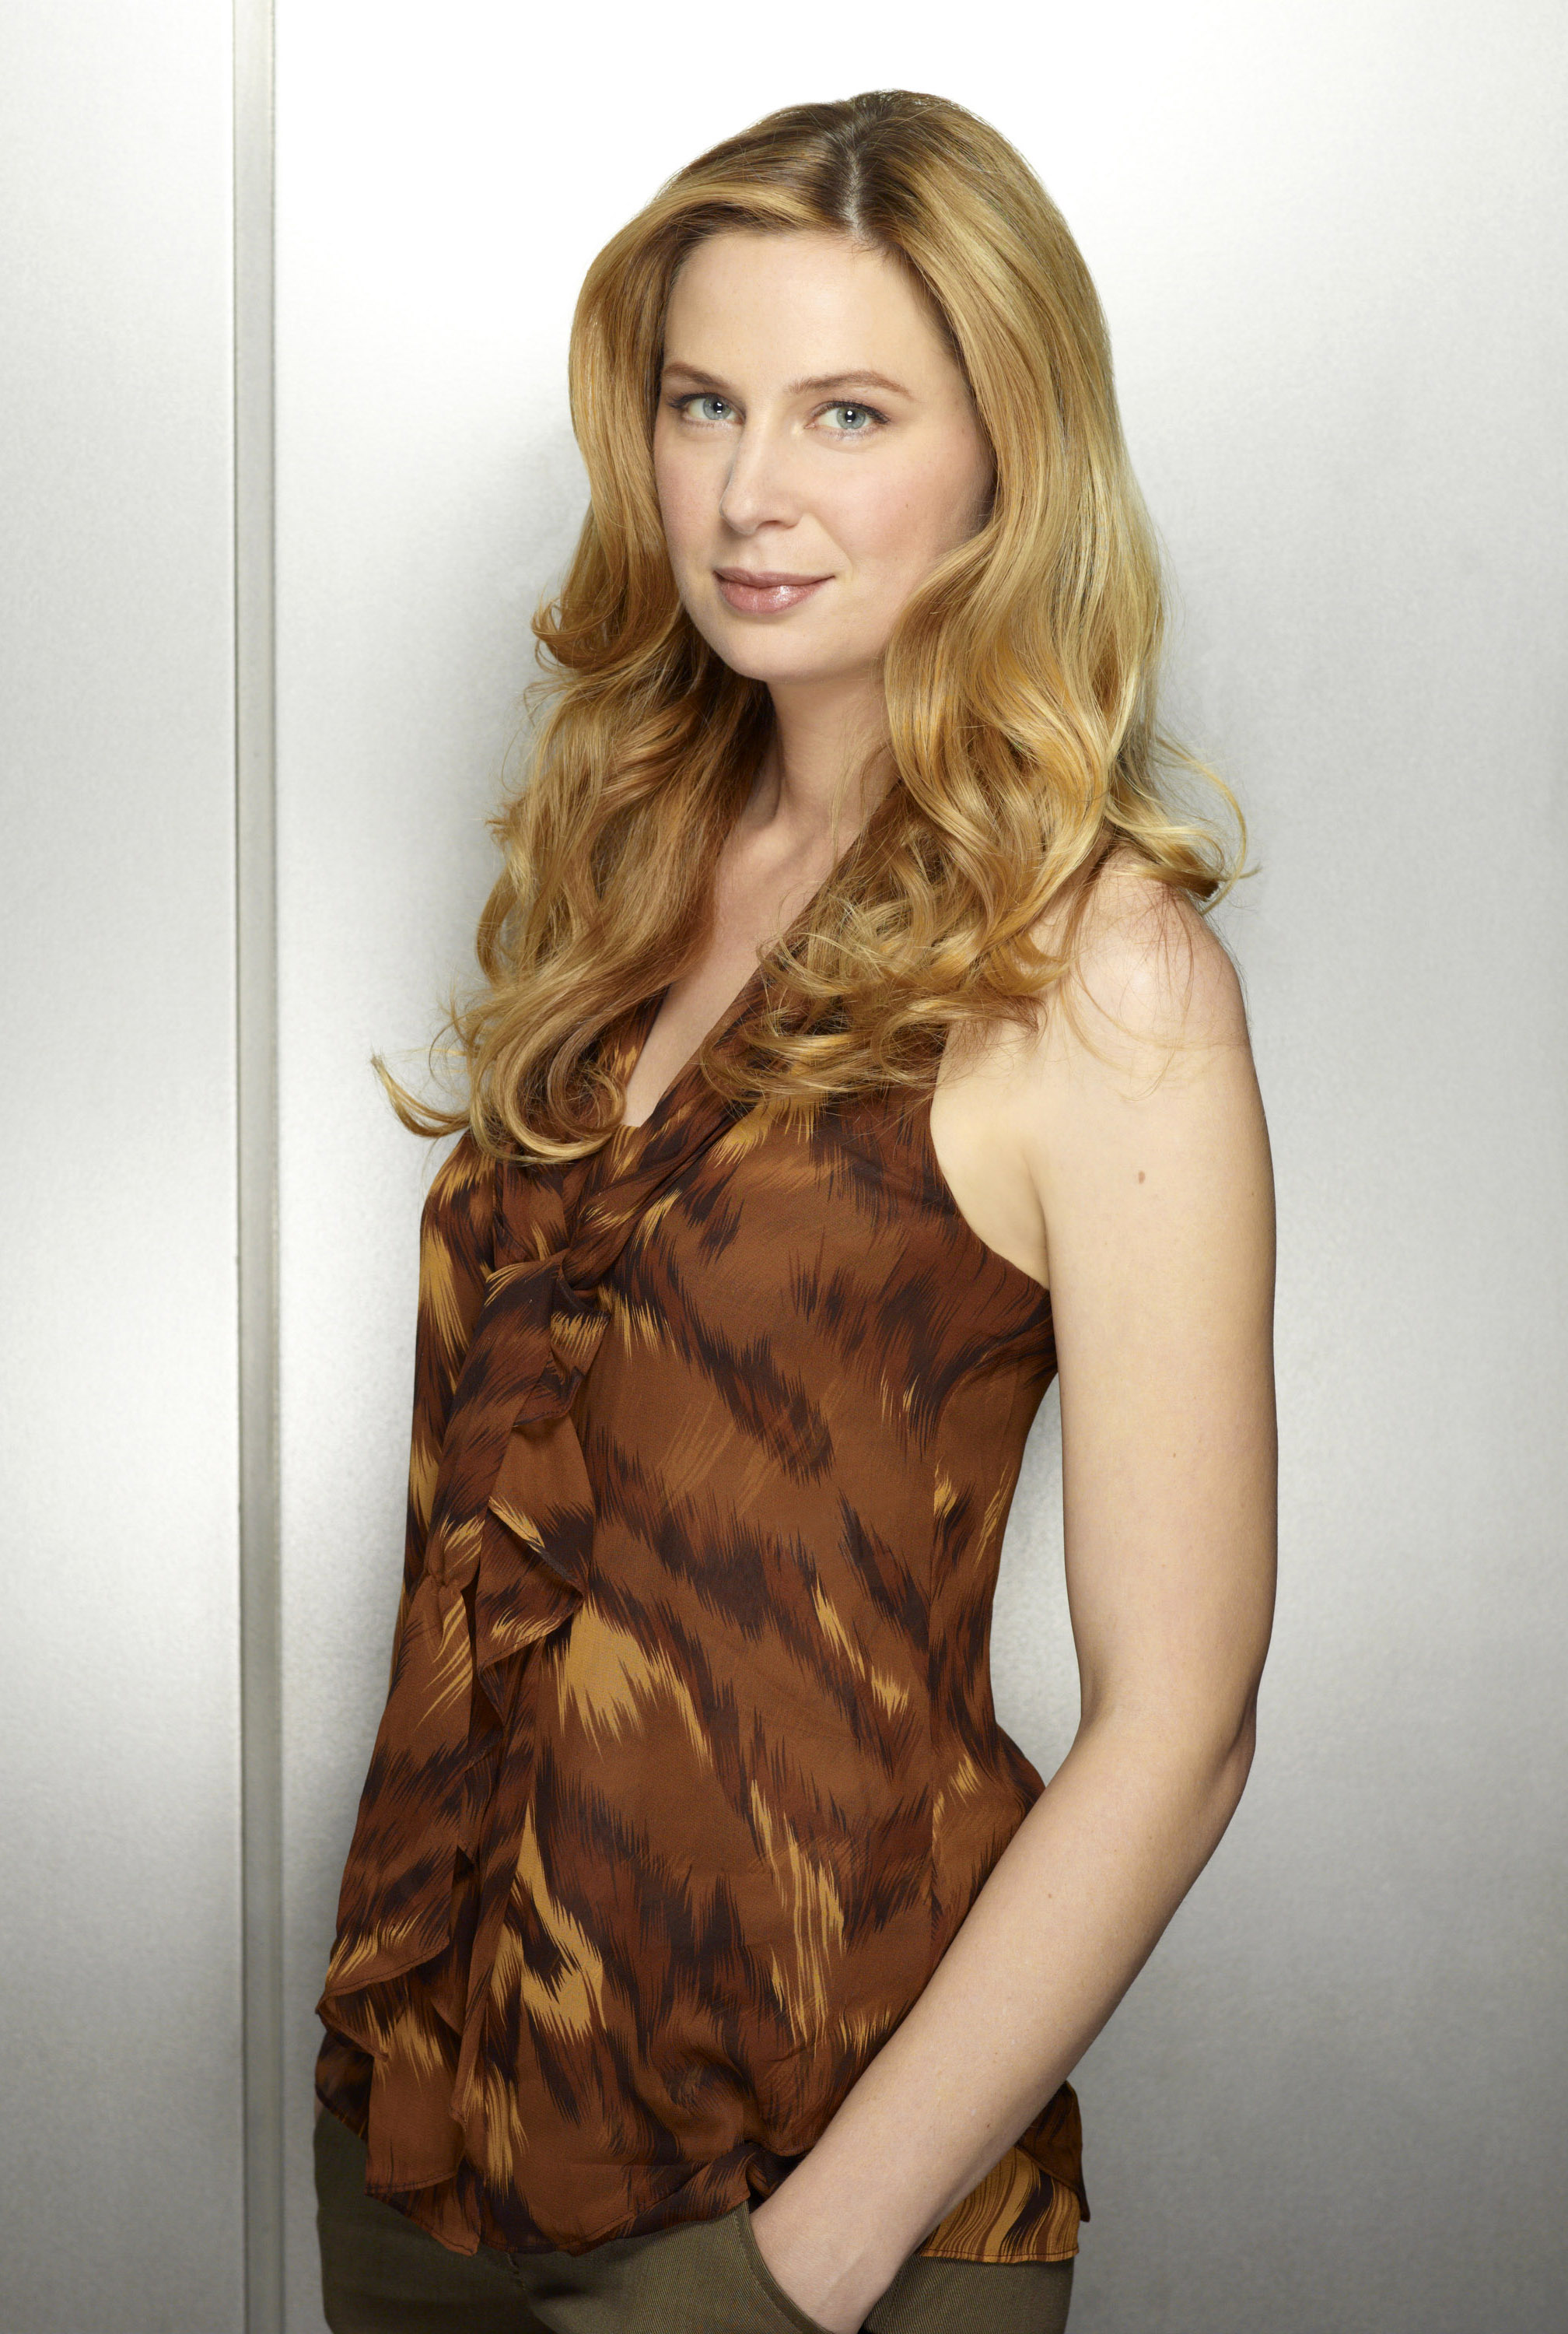 Anne Dudek Photo, Pics, Wallpaper - Photo #339186